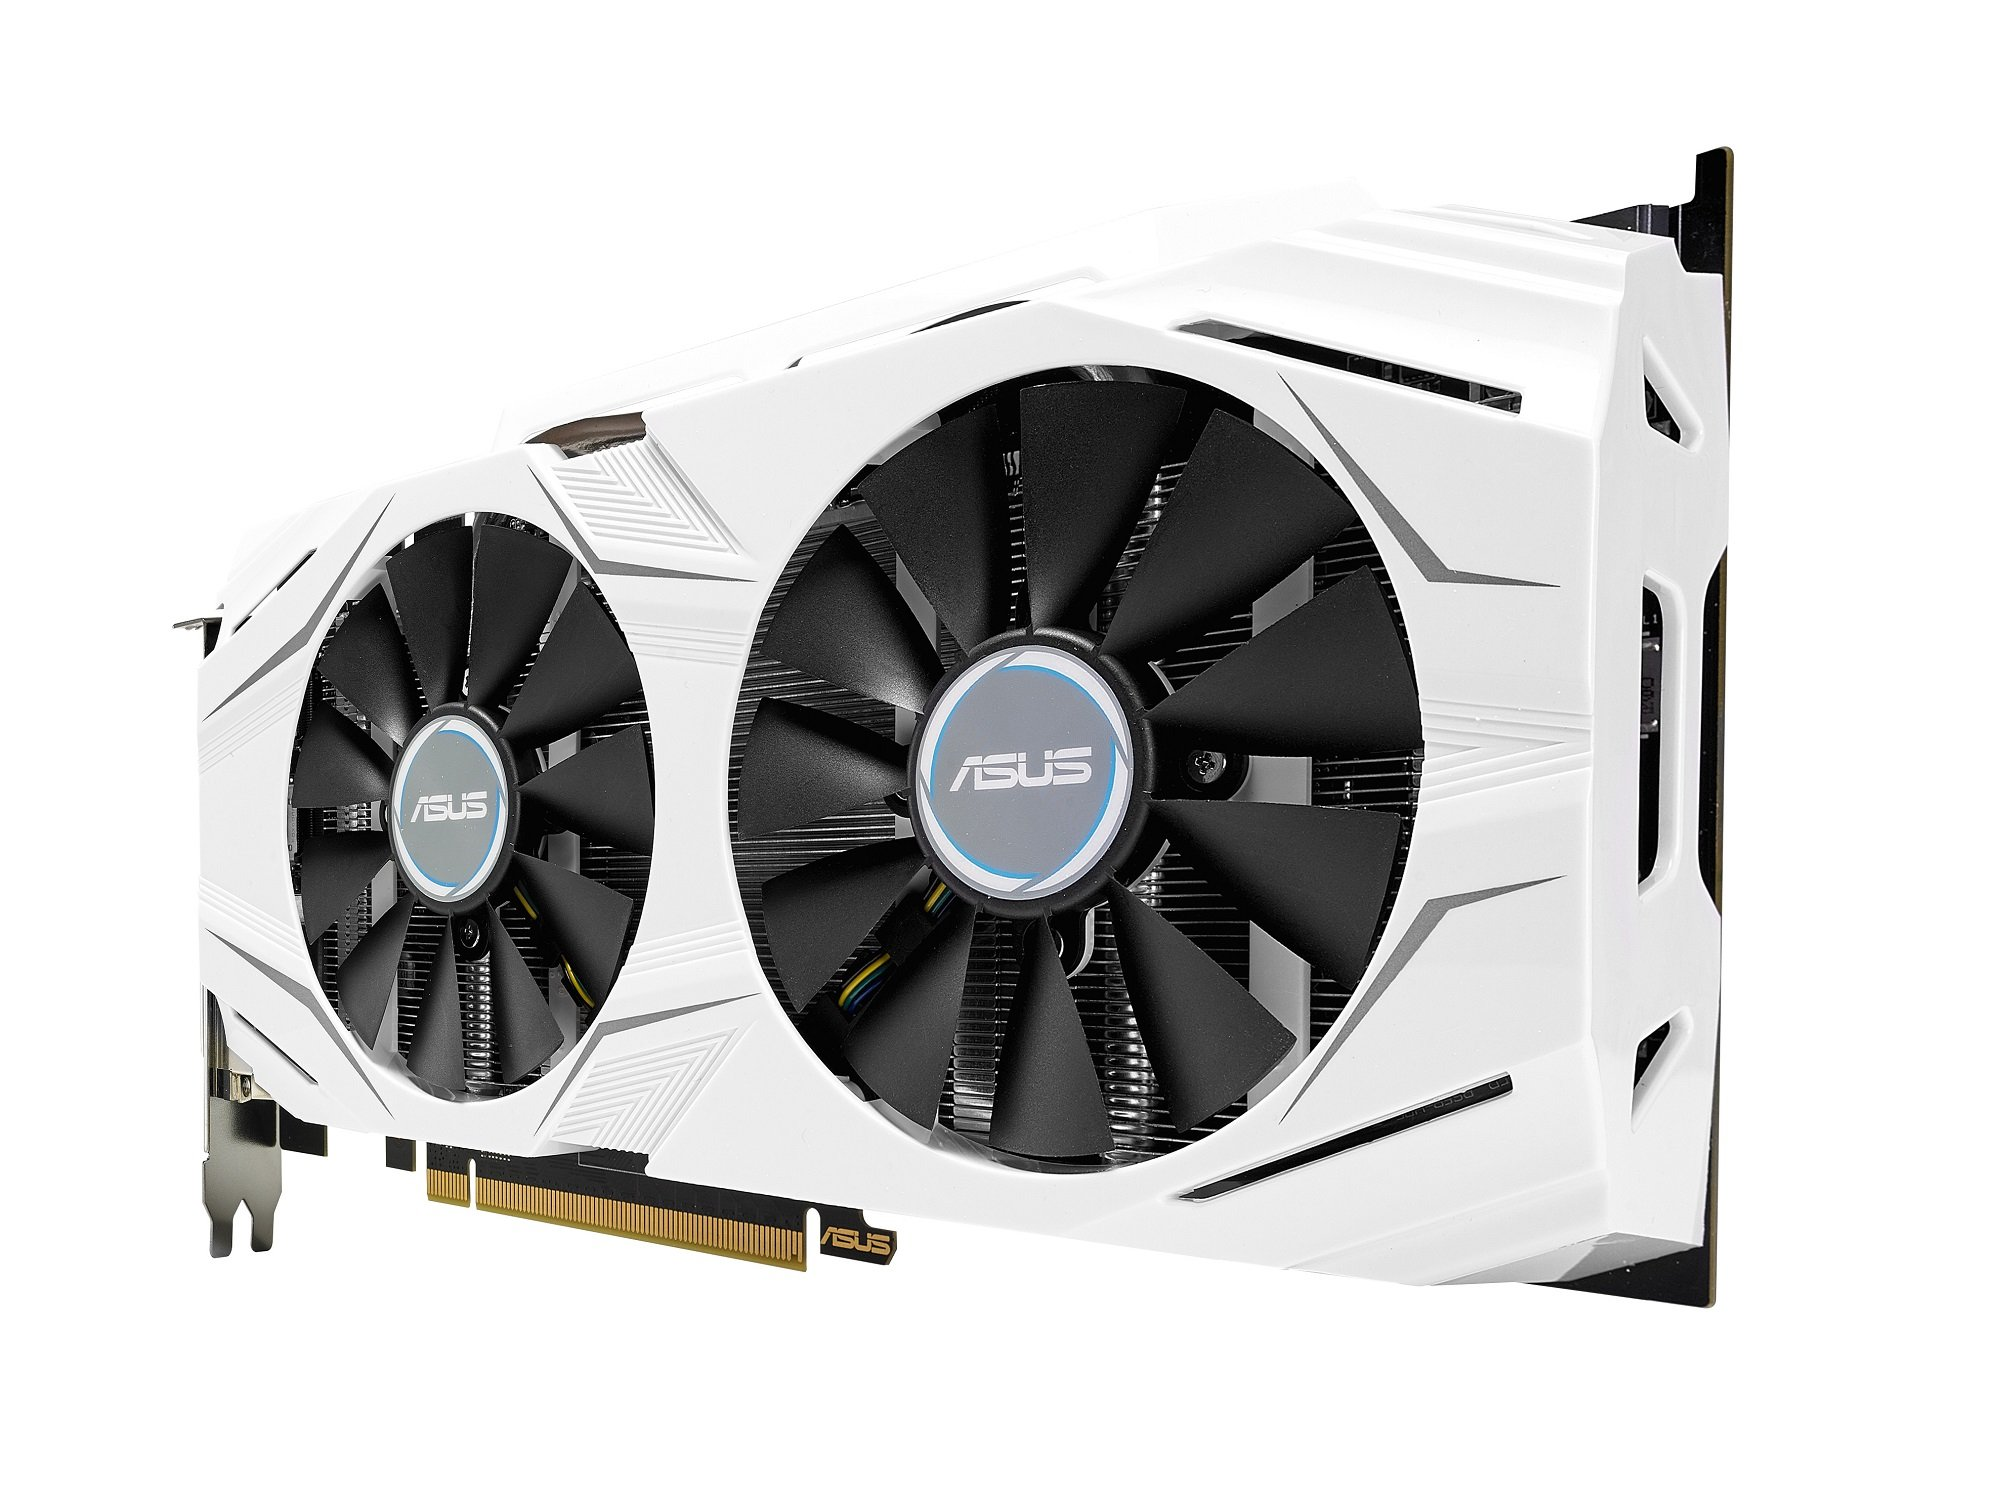 ASUS GeForce GTX 1060 6GB Dual-fan OC Edition VR Ready Dual HDMI DP 1.4 Gaming Graphics Card (DUAL-GTX1060-O6G) by Asus (Image #6)